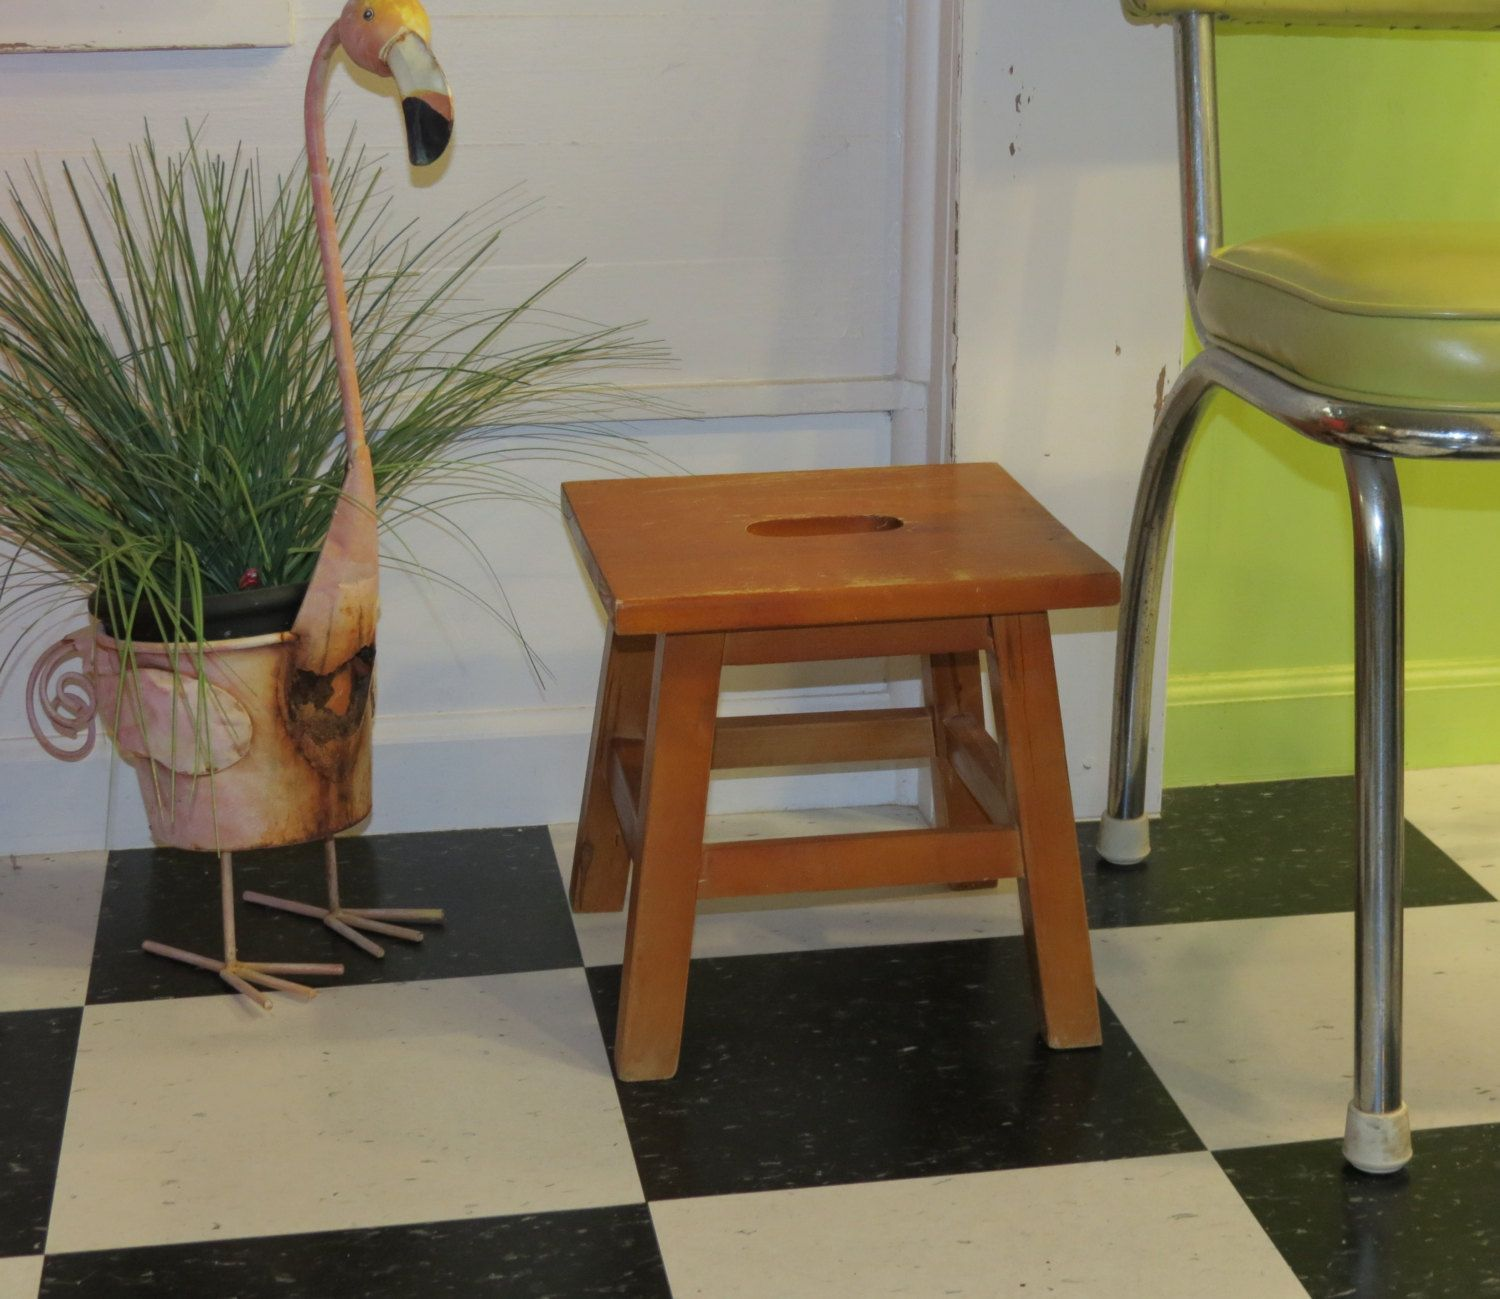 Remarkable Vintage Wooden Step Stool Milking Stool With Handle In Ibusinesslaw Wood Chair Design Ideas Ibusinesslaworg